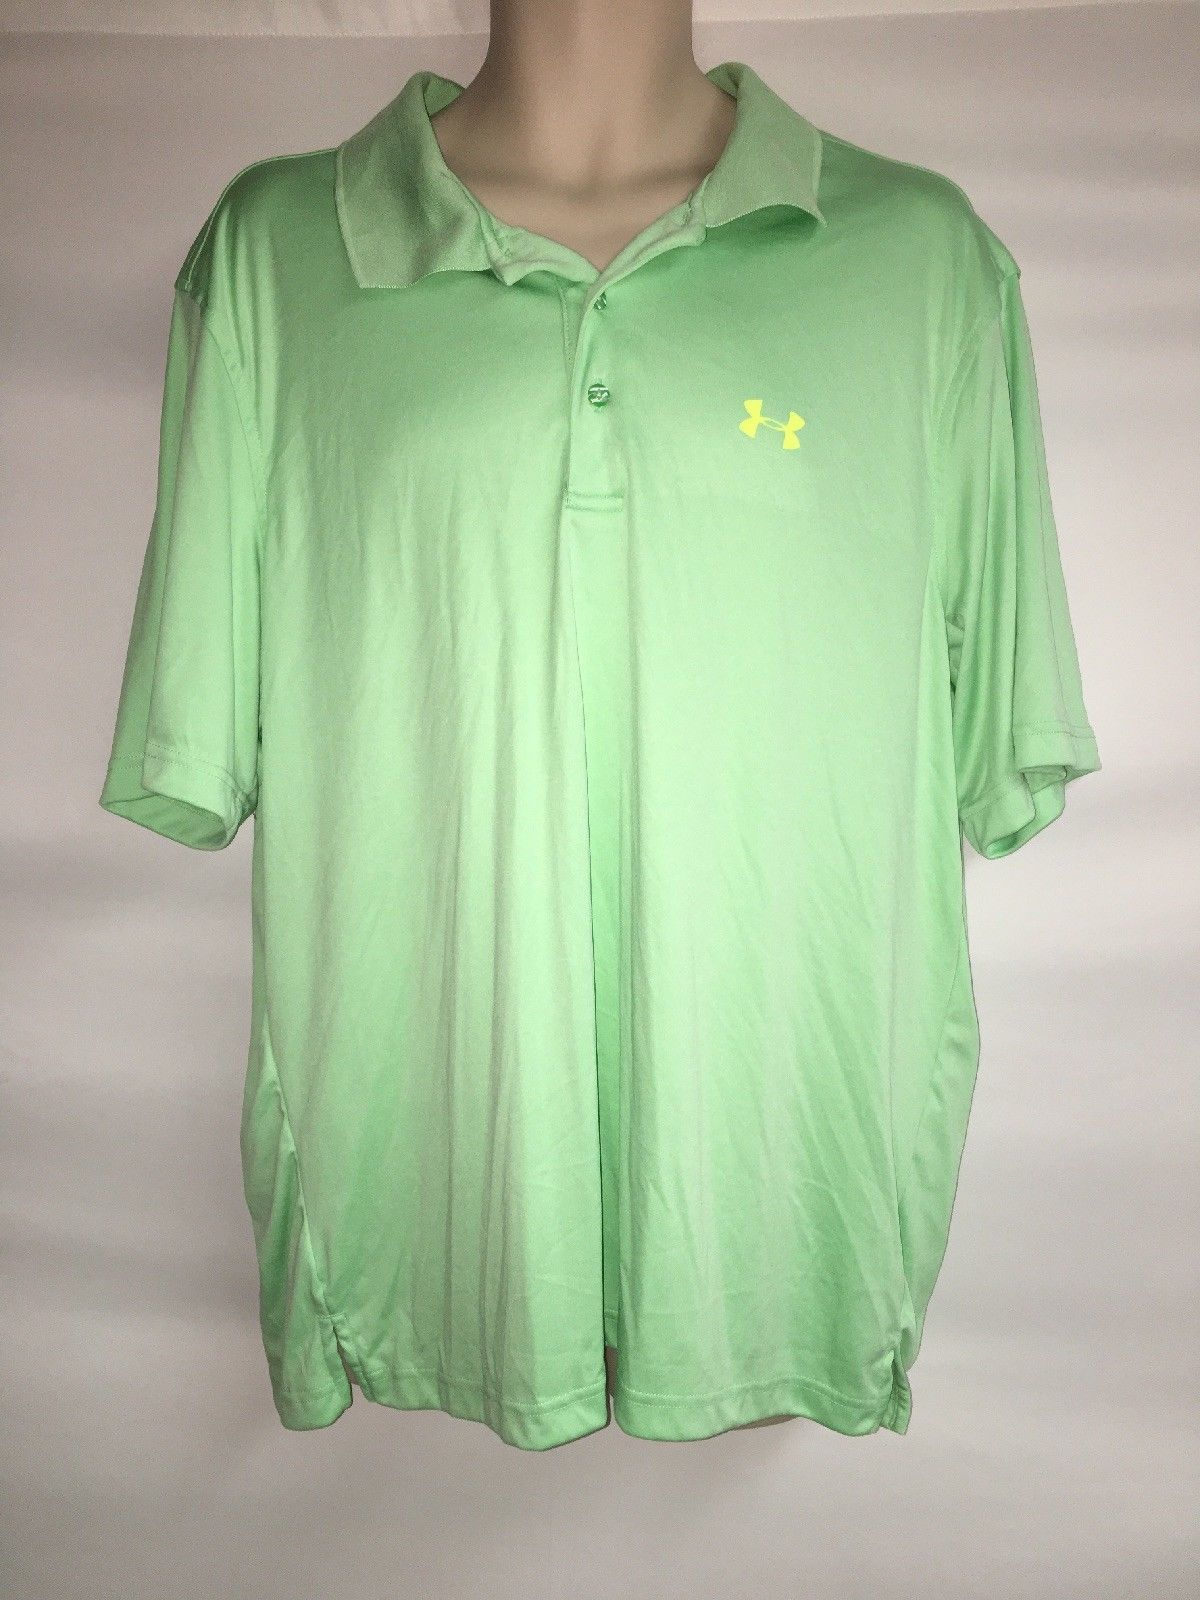 Primary image for Under Armour Polo Shirt Mens Large Mint Loose Fit Heat Gear